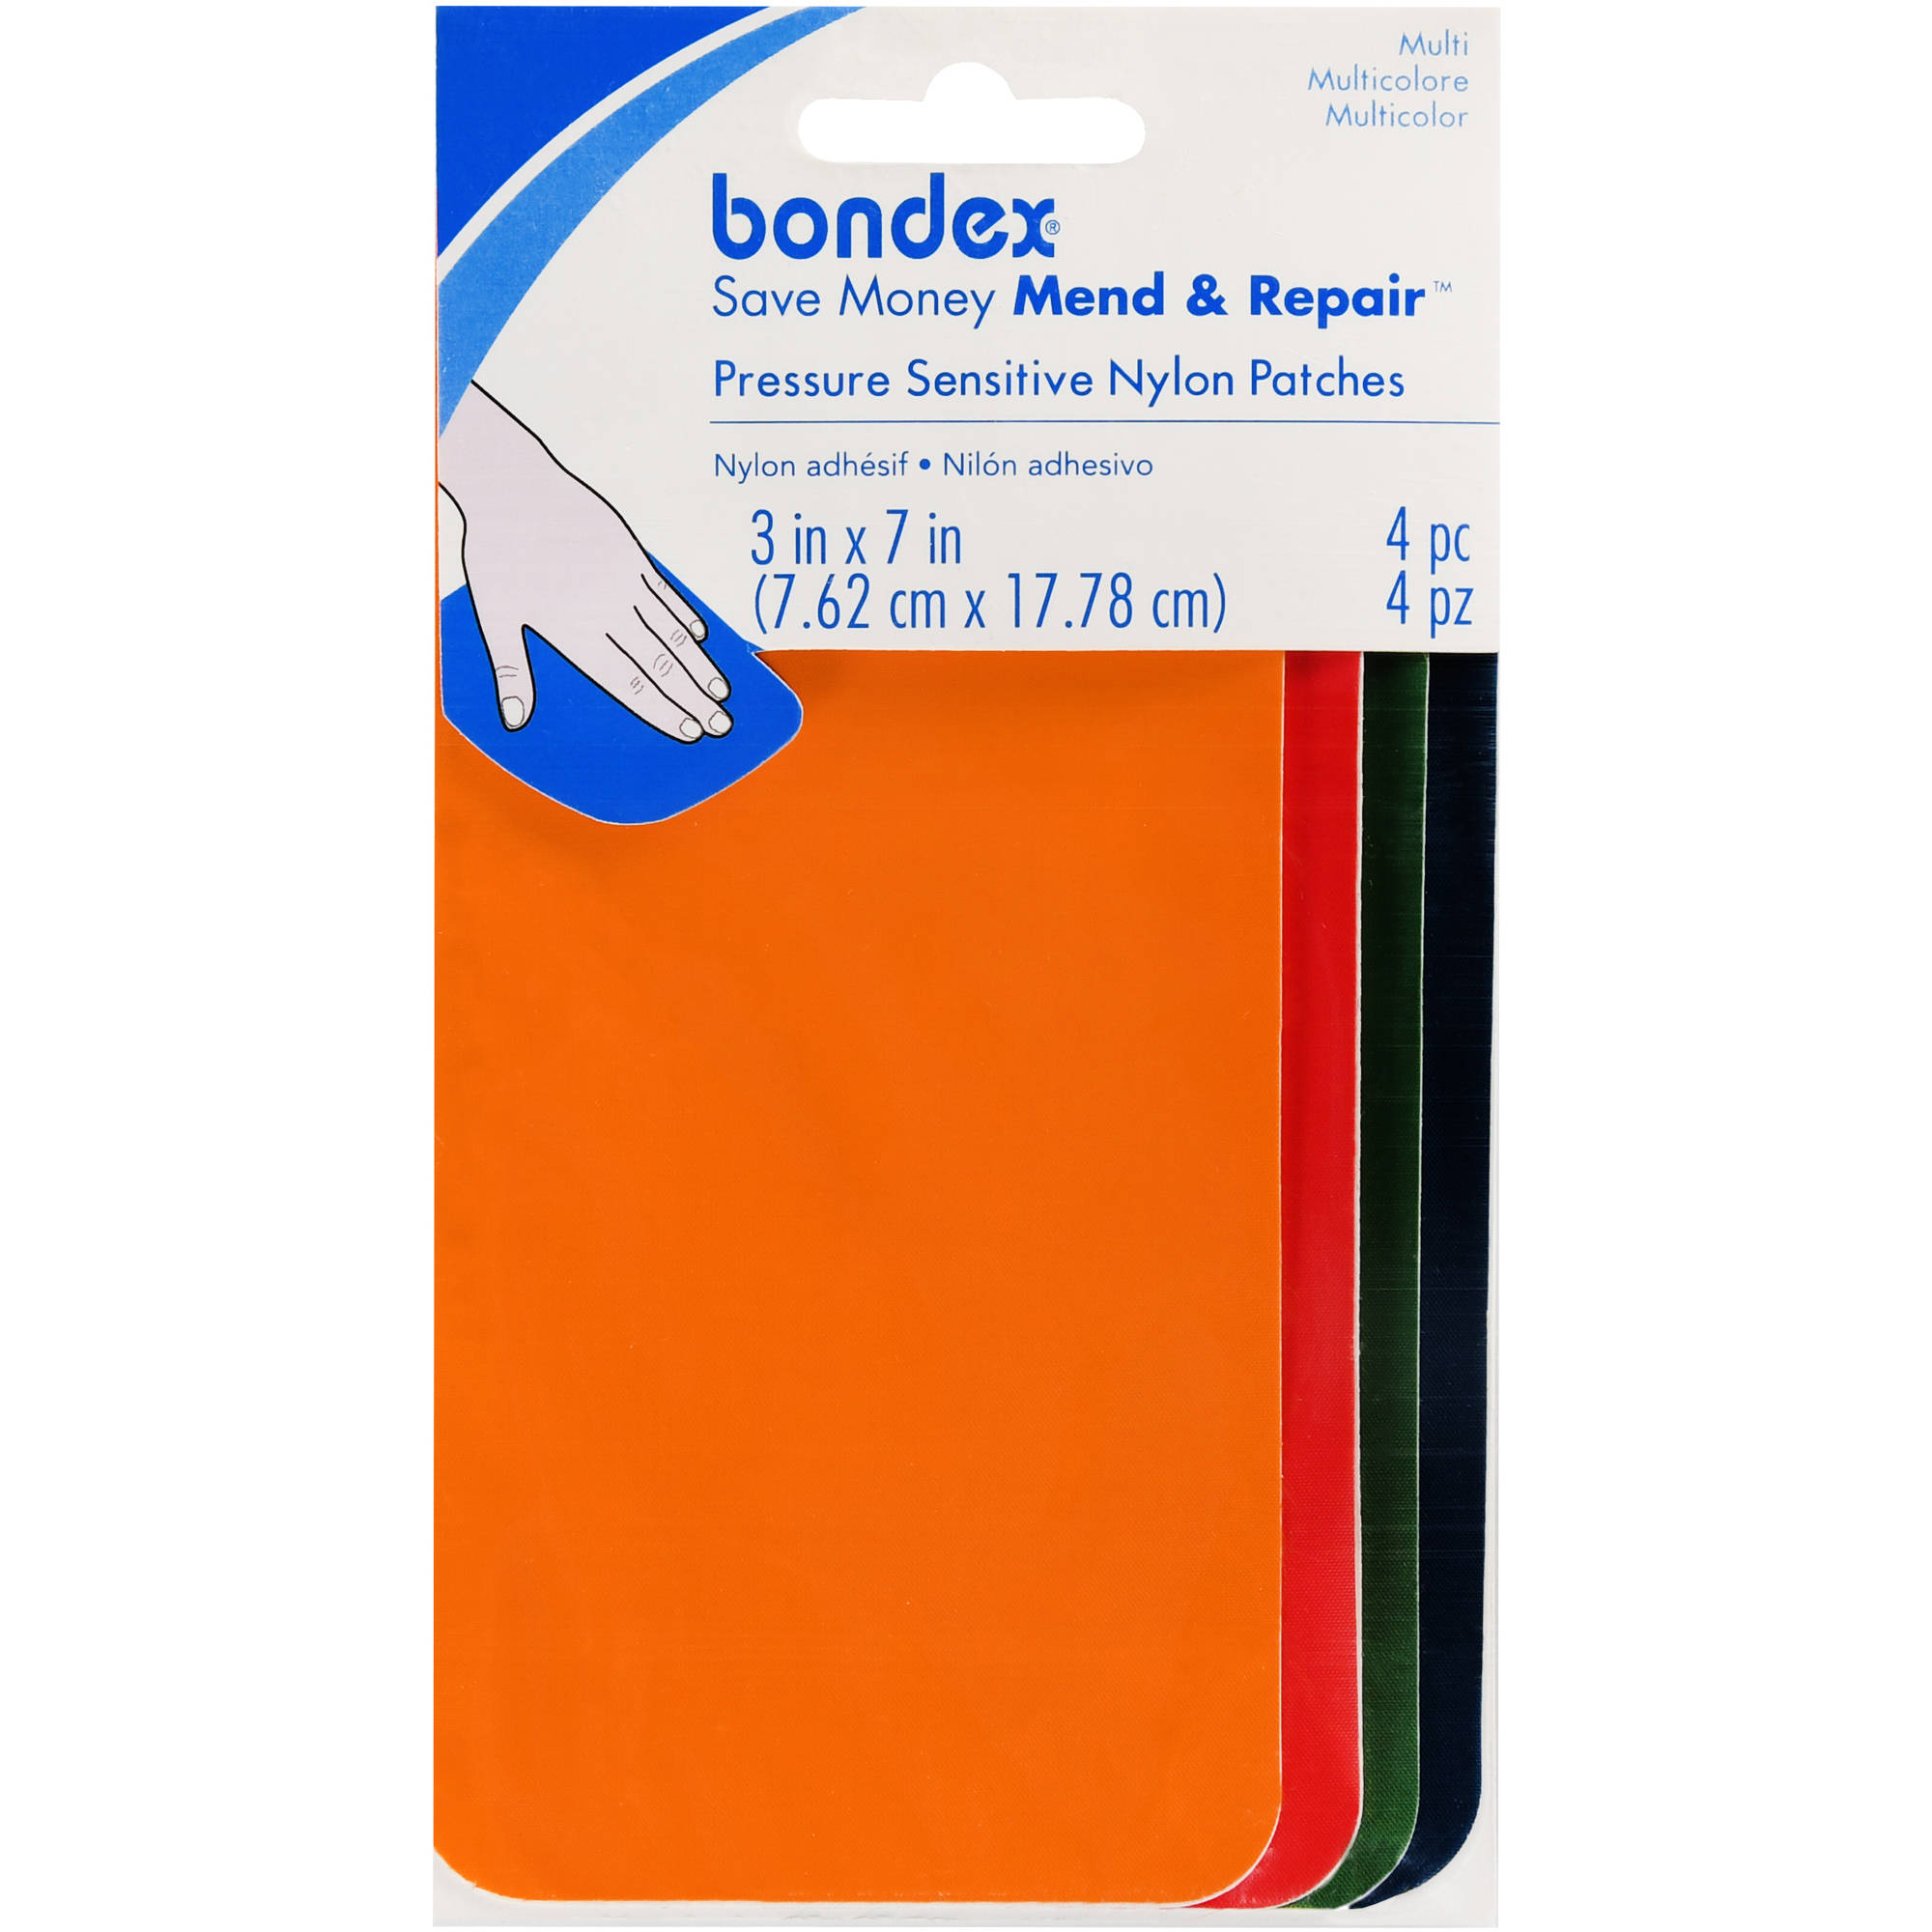 Bondex Pressure Sensitive Nylon Patches